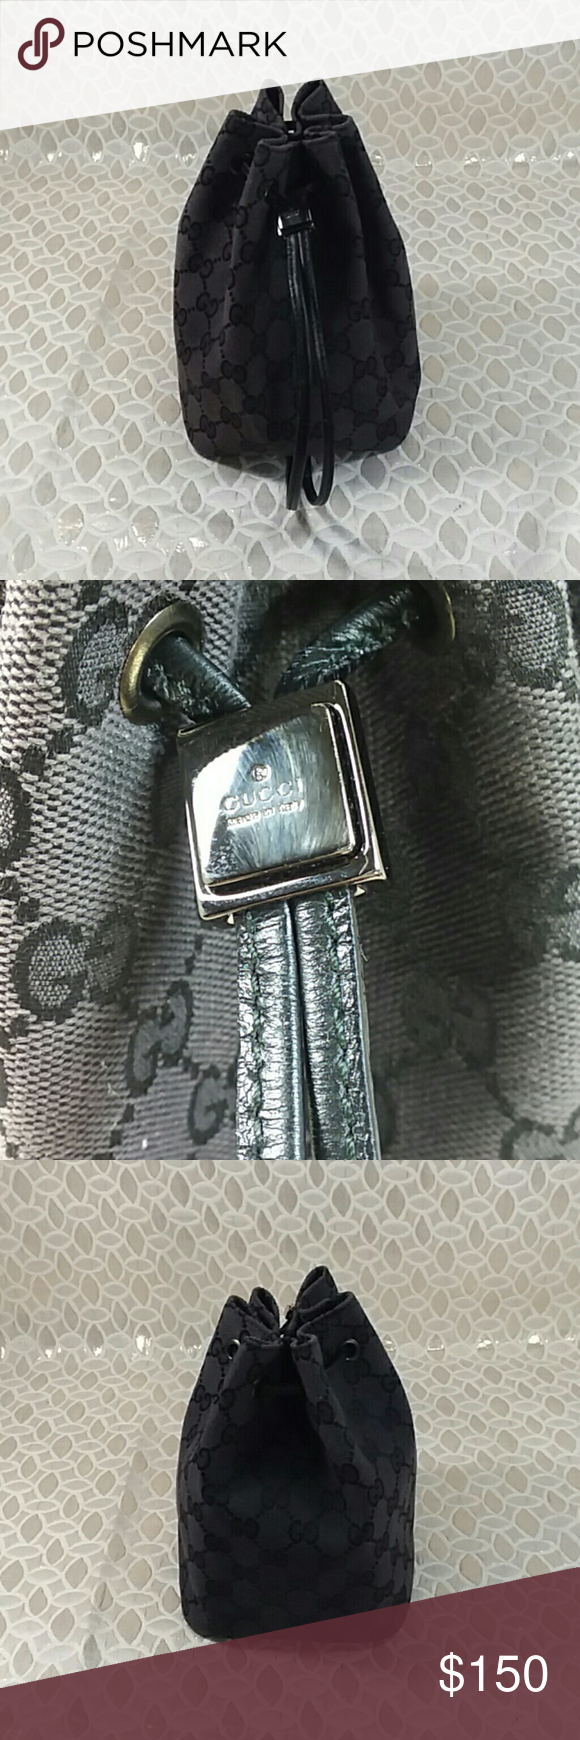 102cc3635cb6 Authentic Gucci GG Monogram String Small Bag. Canvas and leather showed  signs of used as the bag was preowned. The bag was made in Italy with a  serial ...